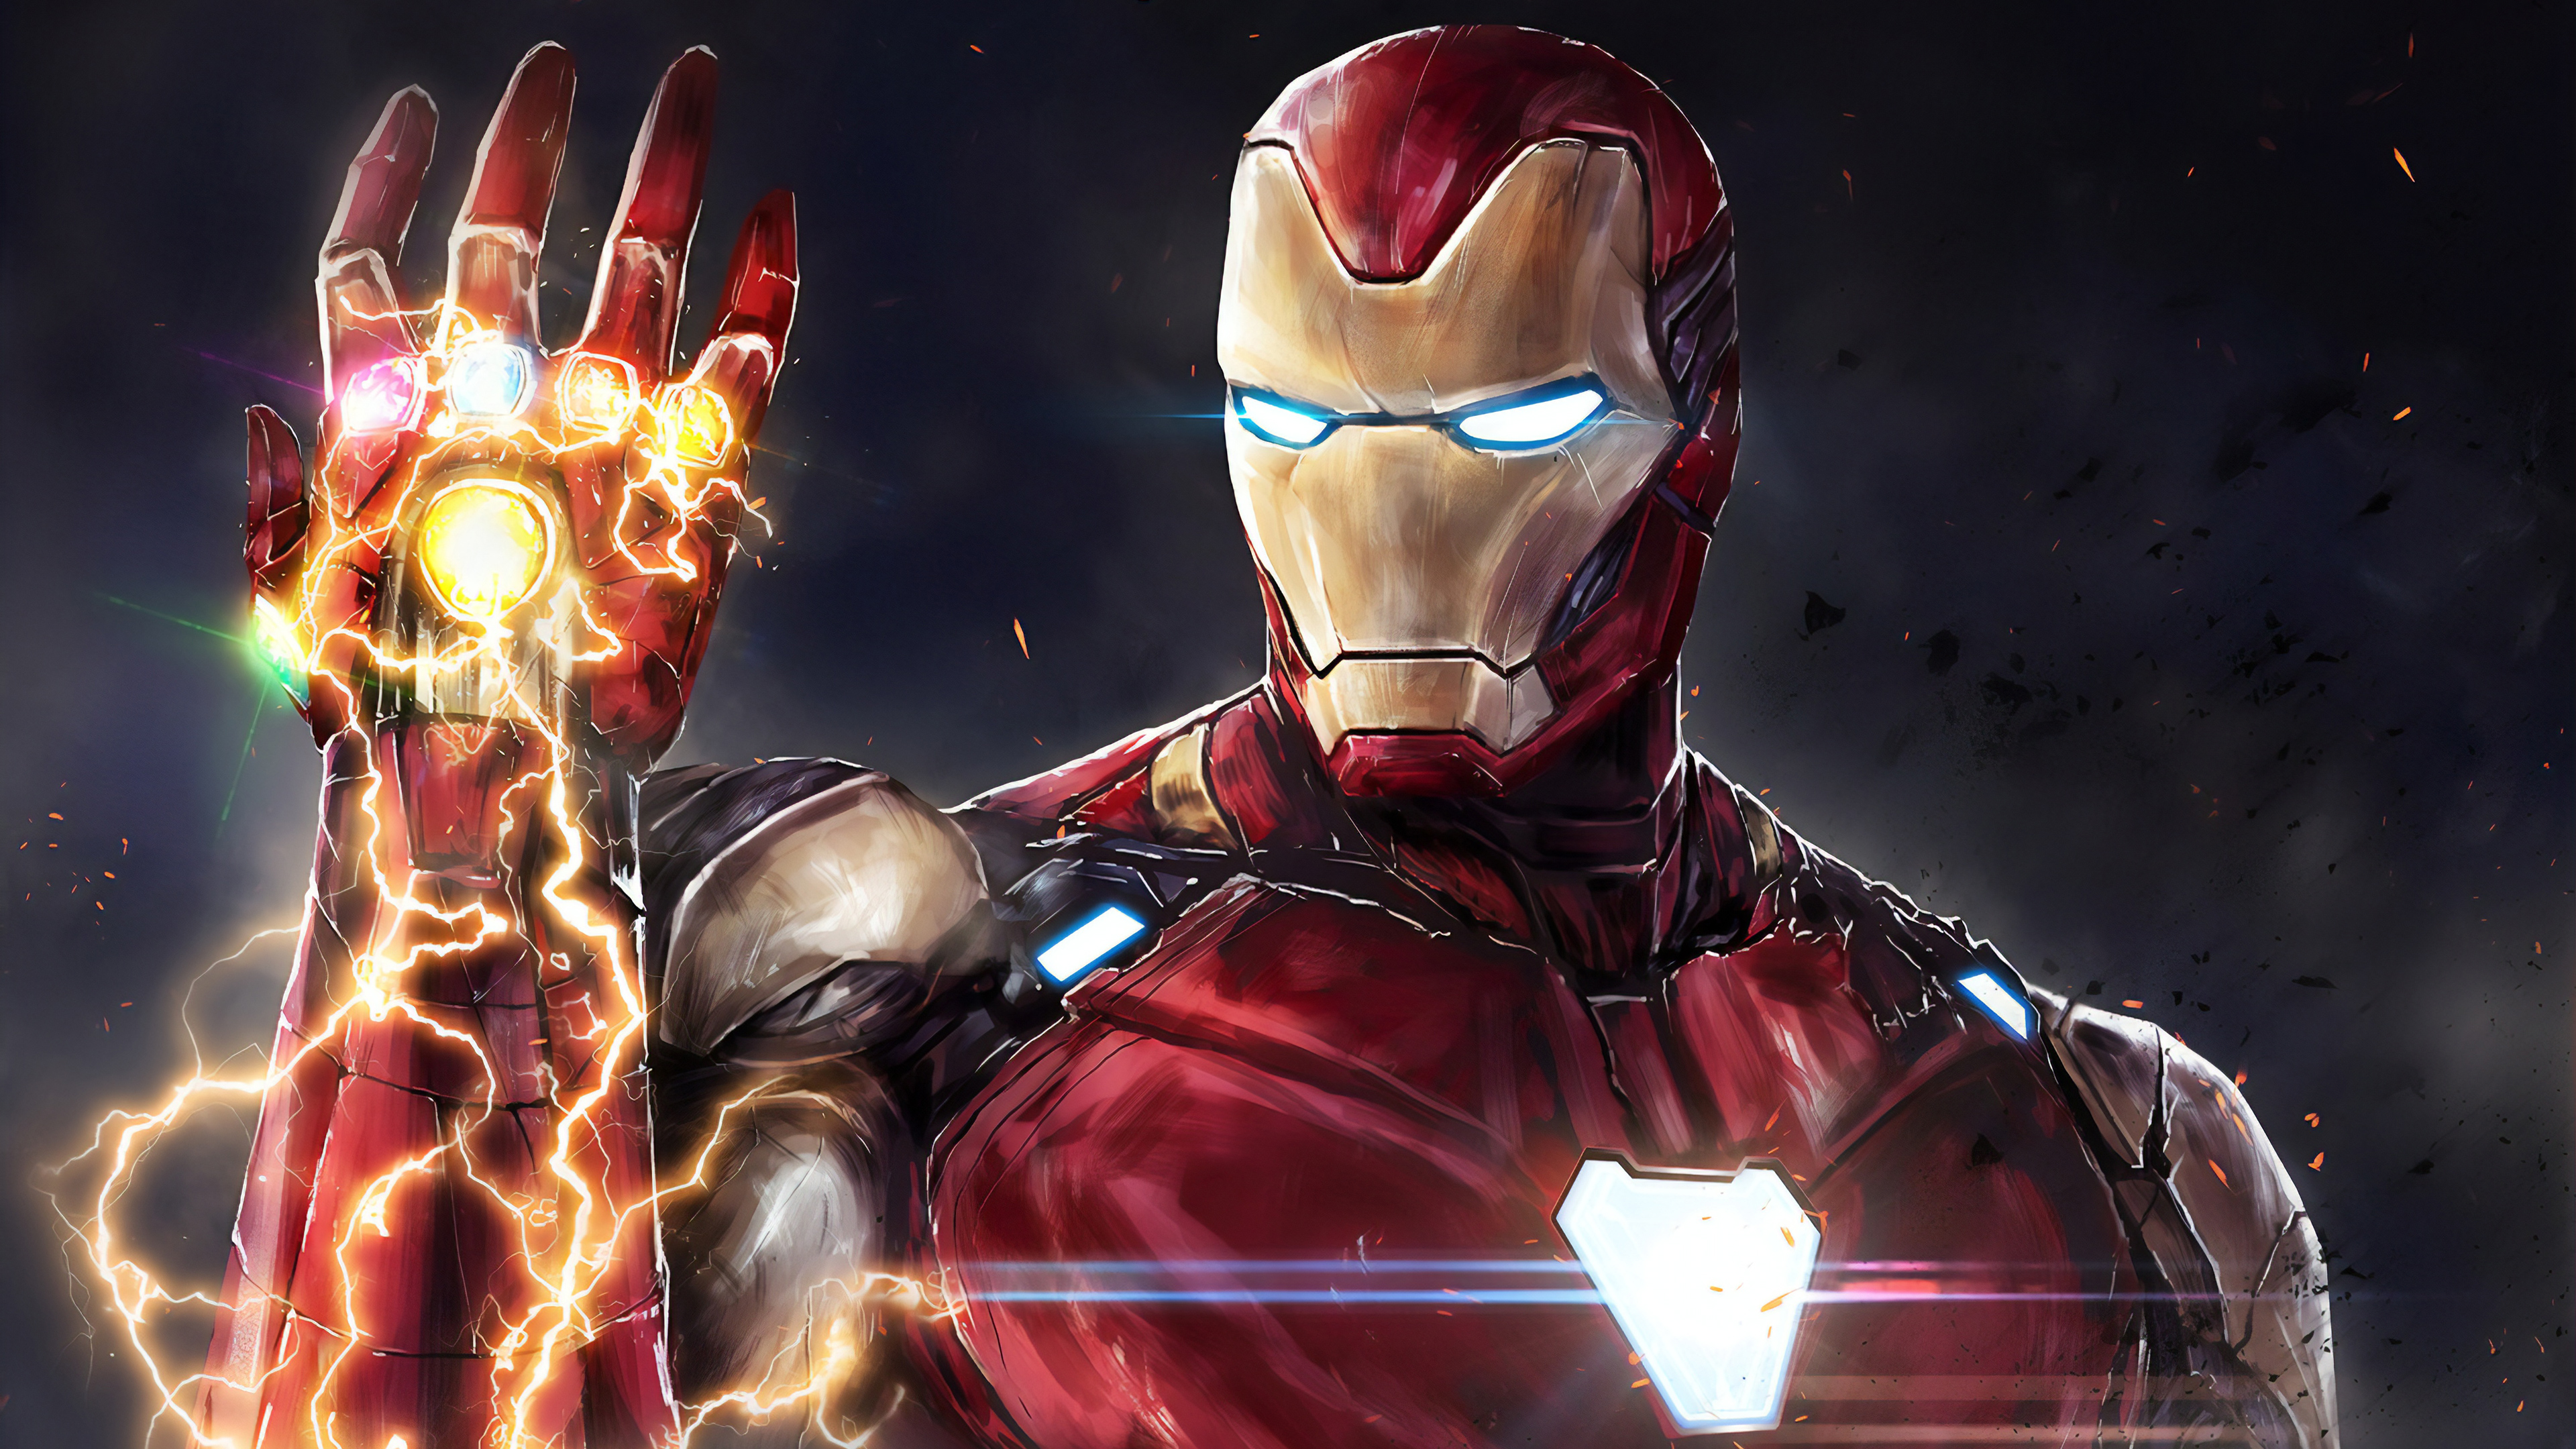 I am iron man 4k hd superheroes 4k wallpapers images backgrounds photos and pictures - Iron man wallpaper 4k ...